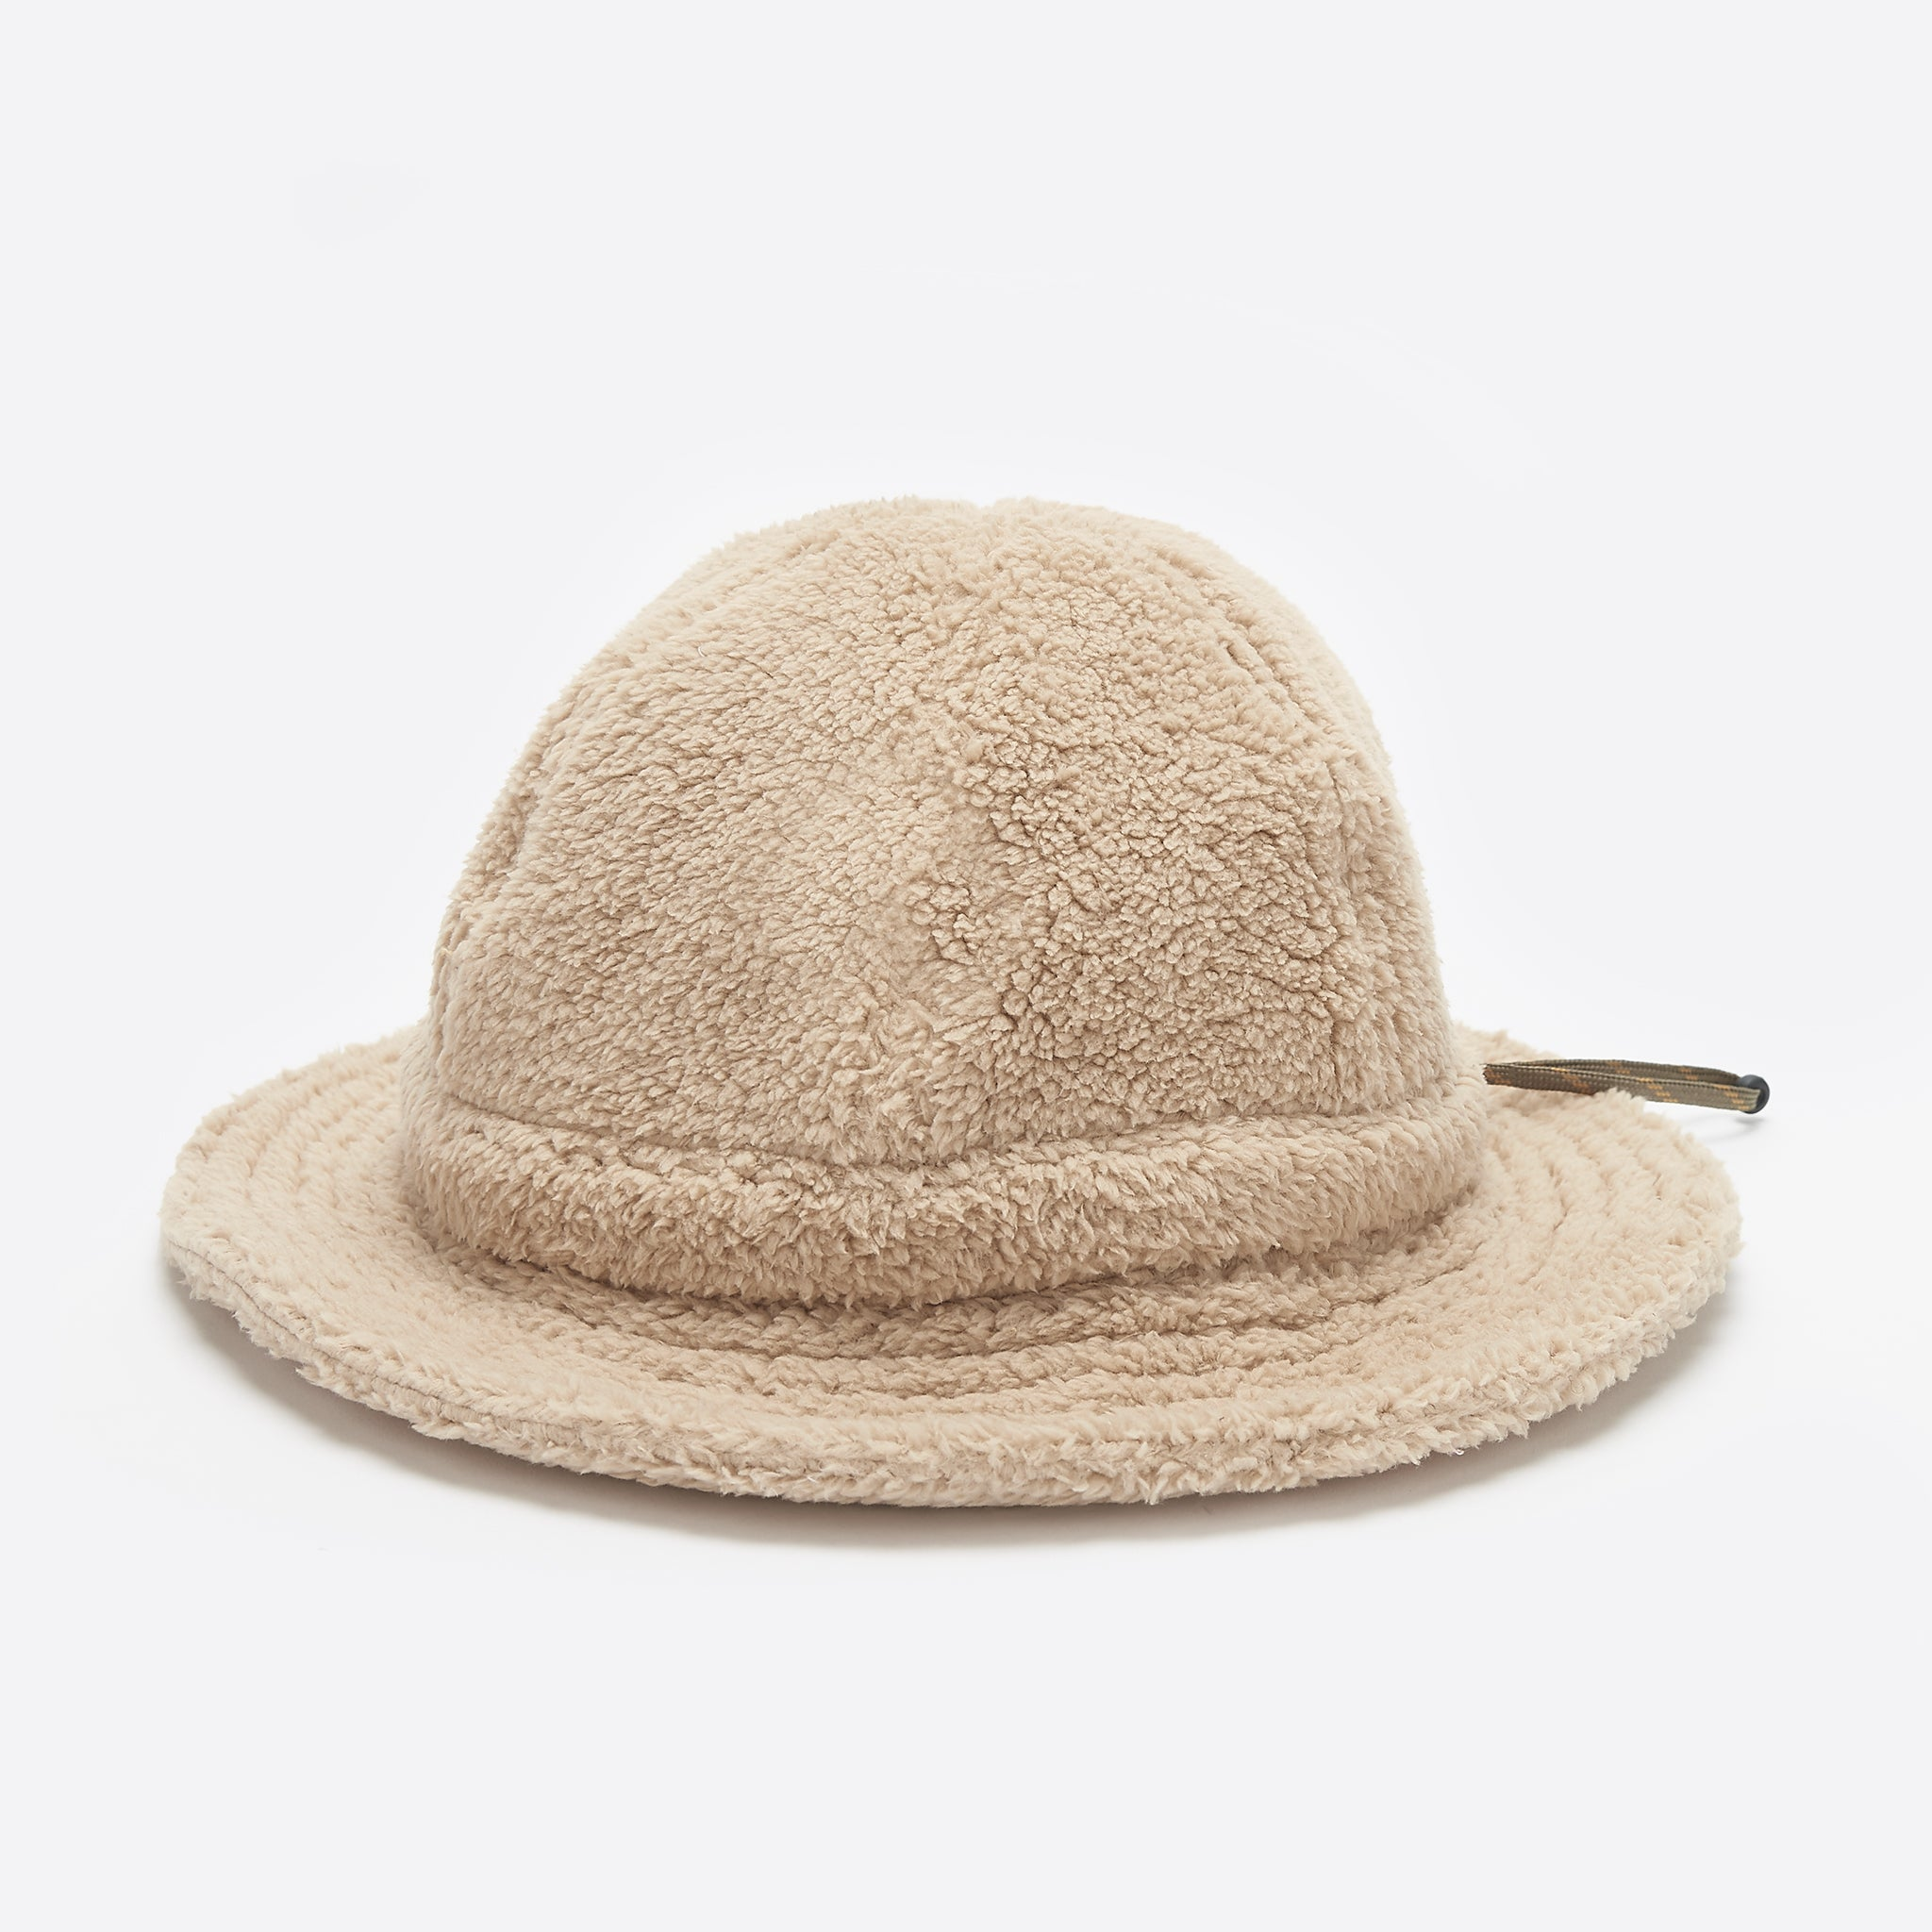 Câbleami Boa Fleece Metro Hat in Beige